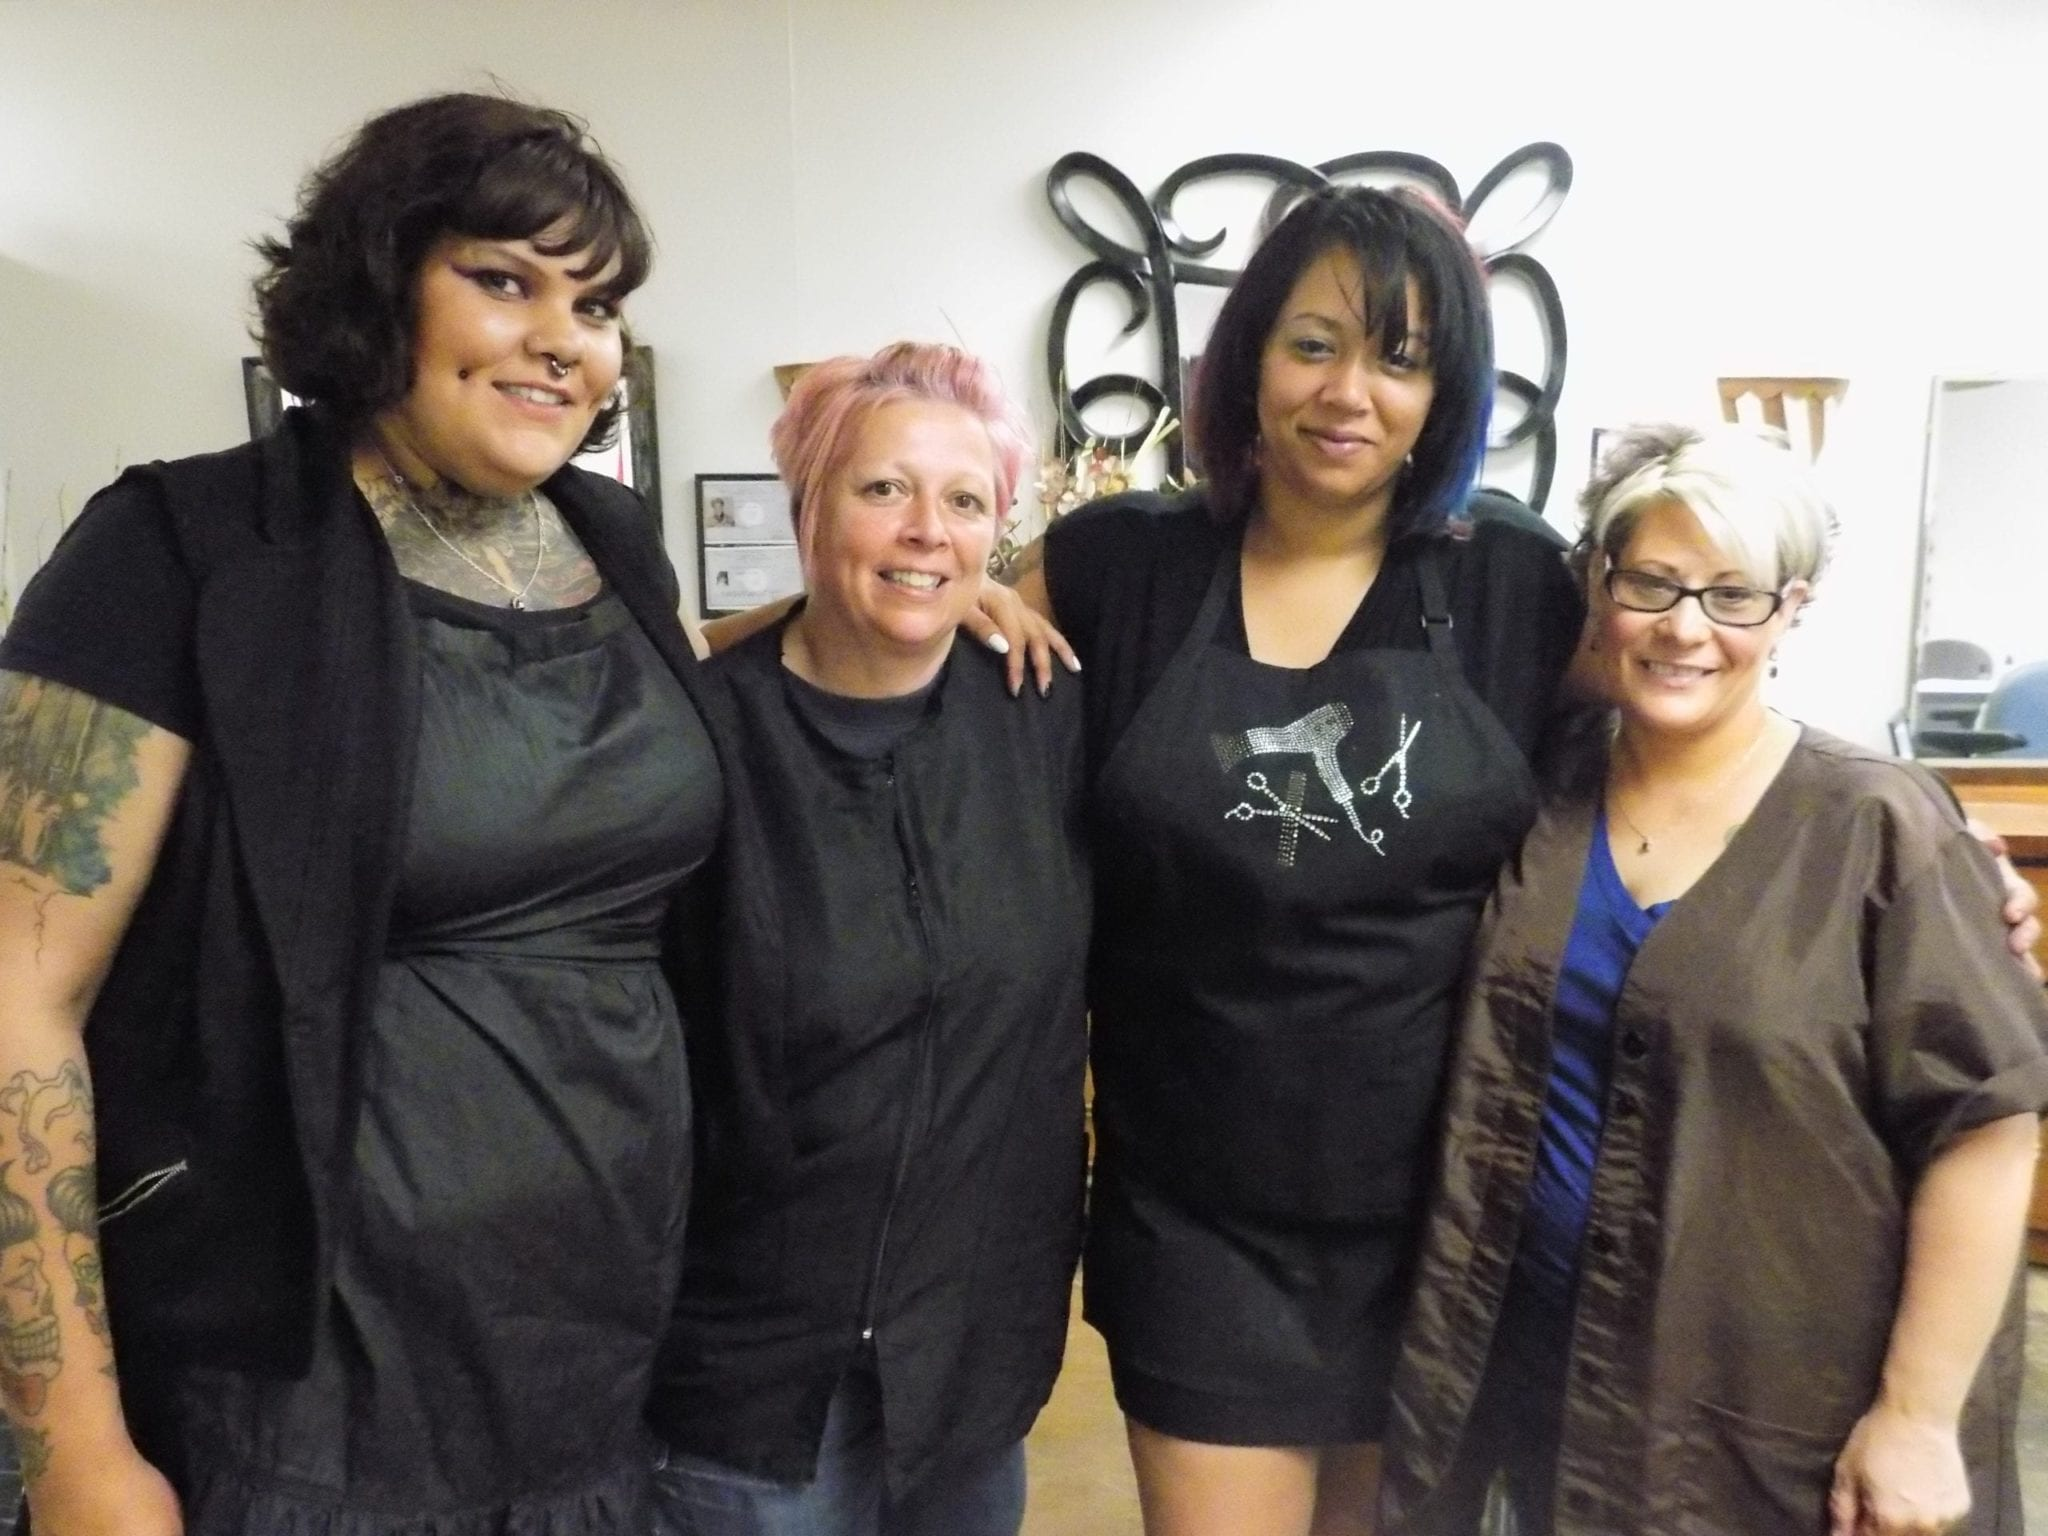 Grooves Salon opens on West Manlius Street in East Syracuse